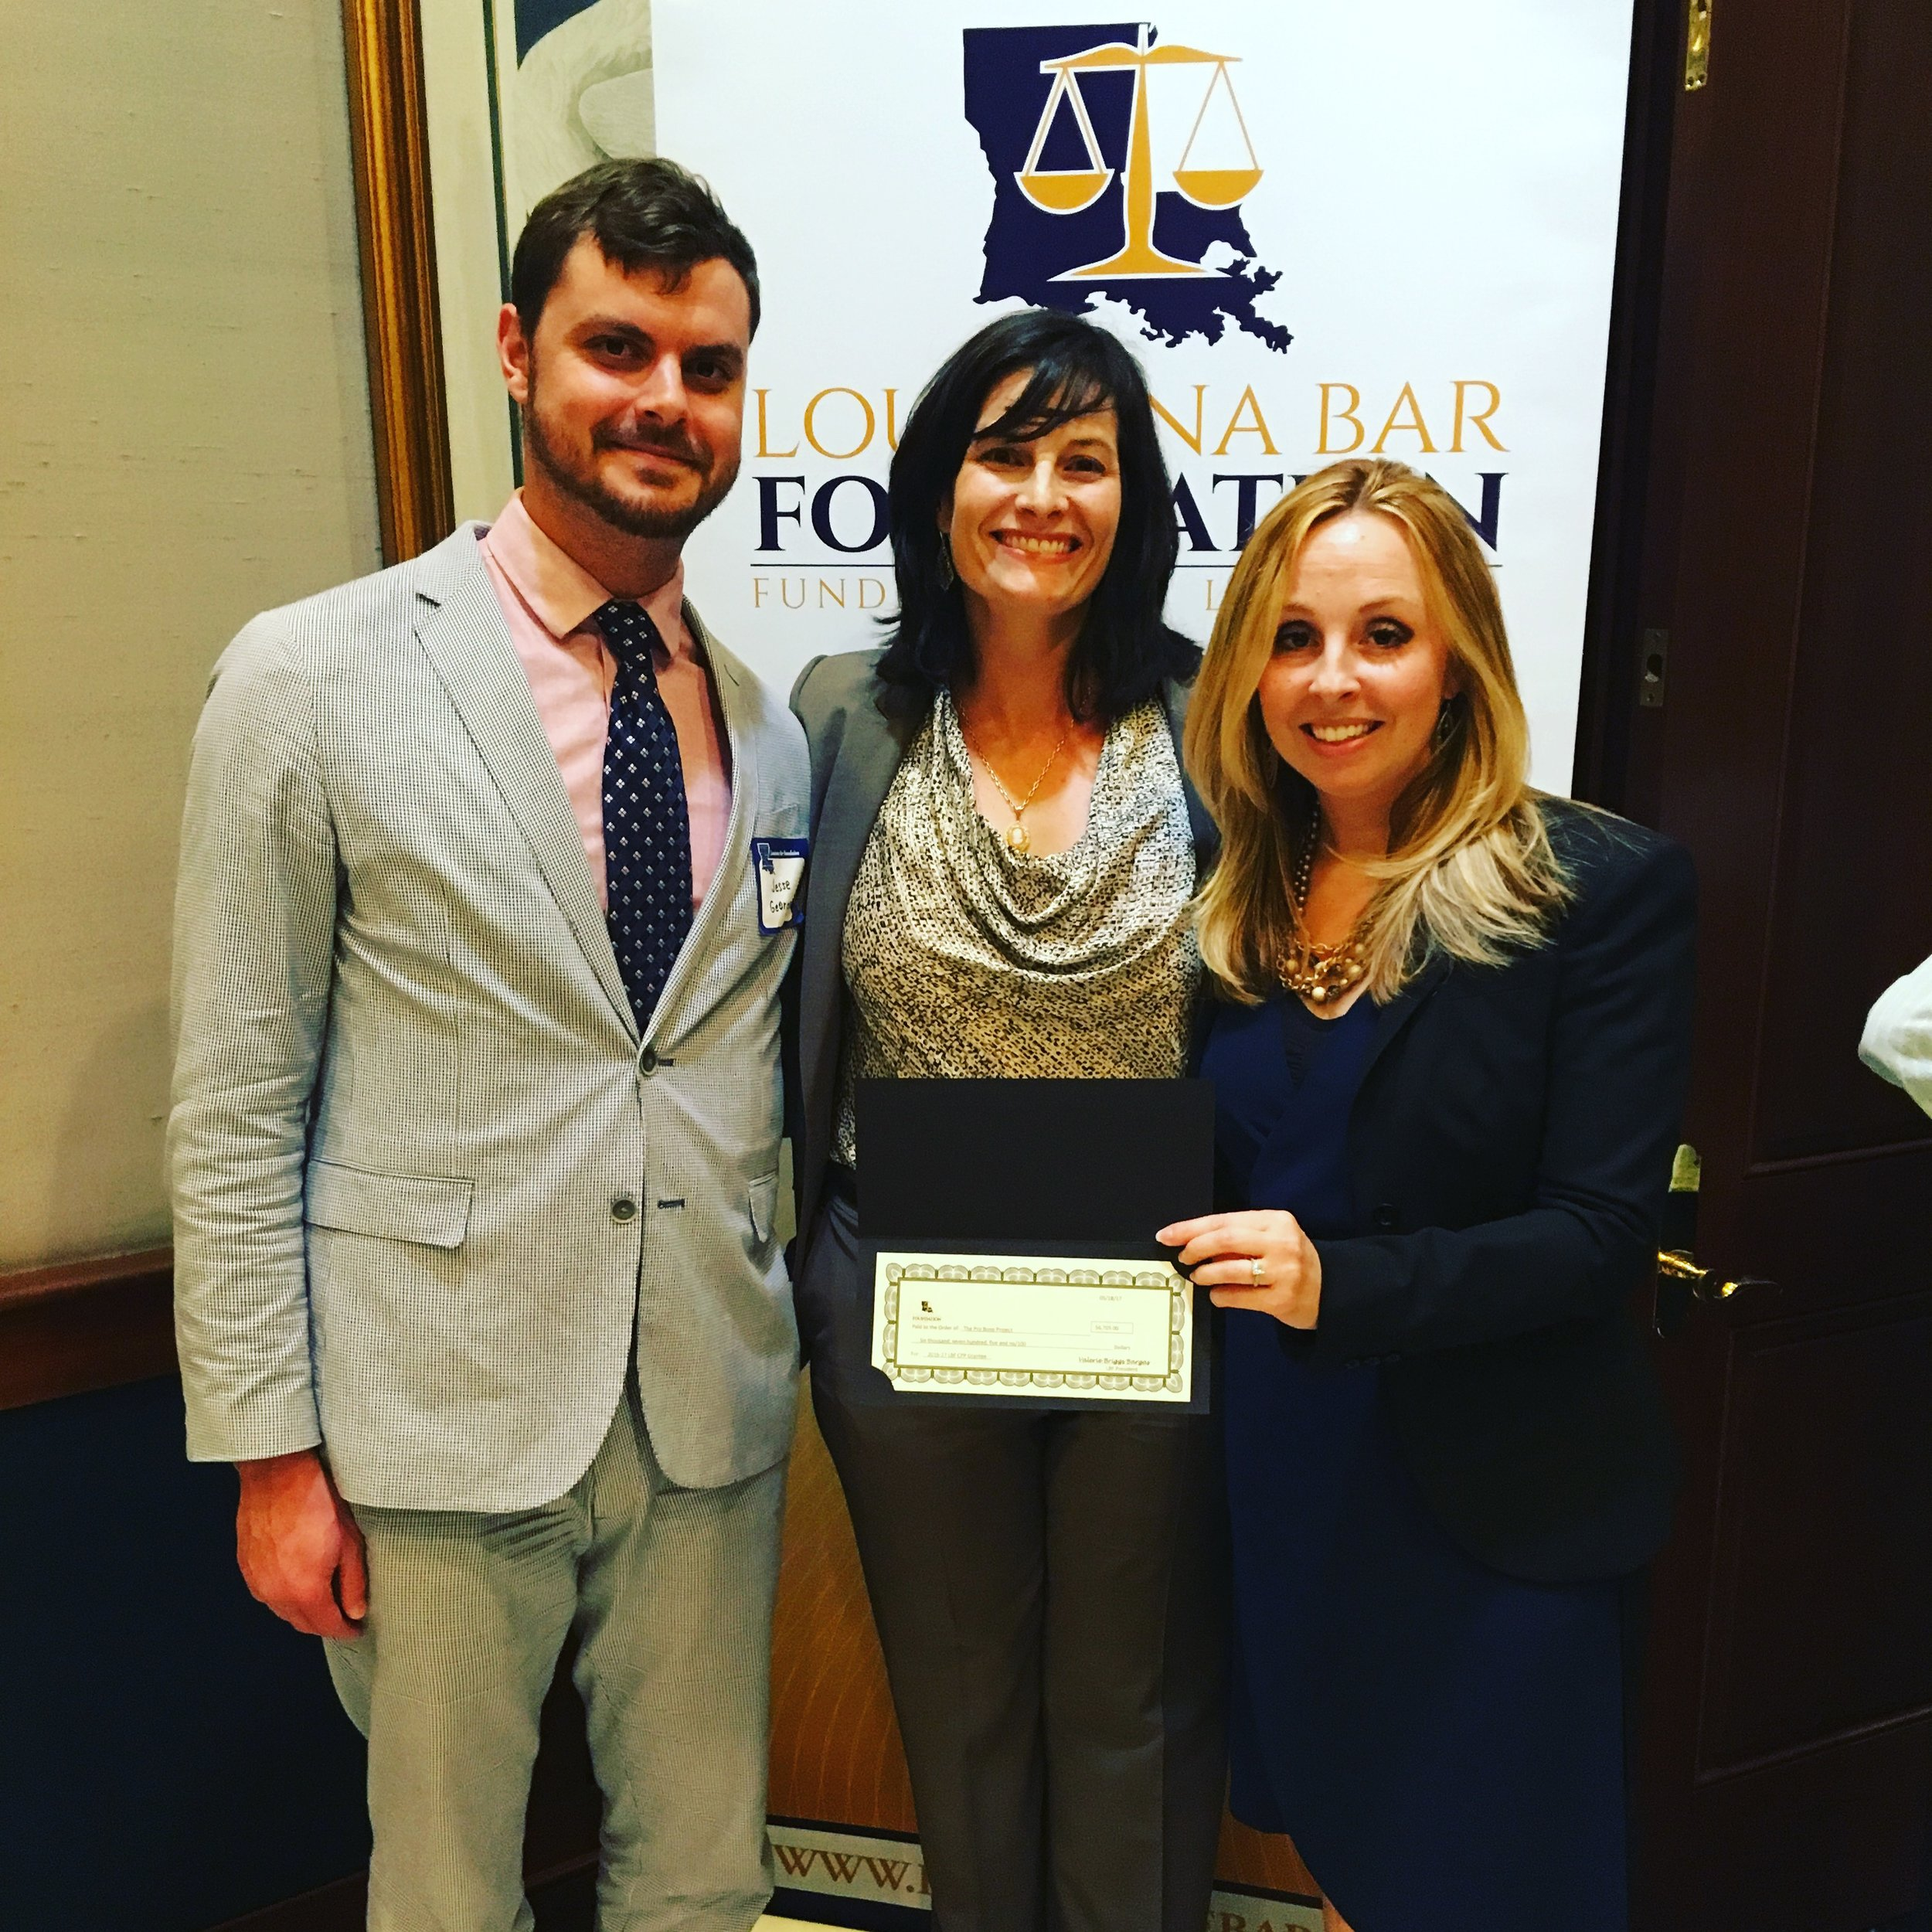 l to r: Jesse George, Managing Director for Direct Client Services, TBPB; LBF President Valerie Bargas; Jennifer Rizzo-Choi, Executive Director, TPBP